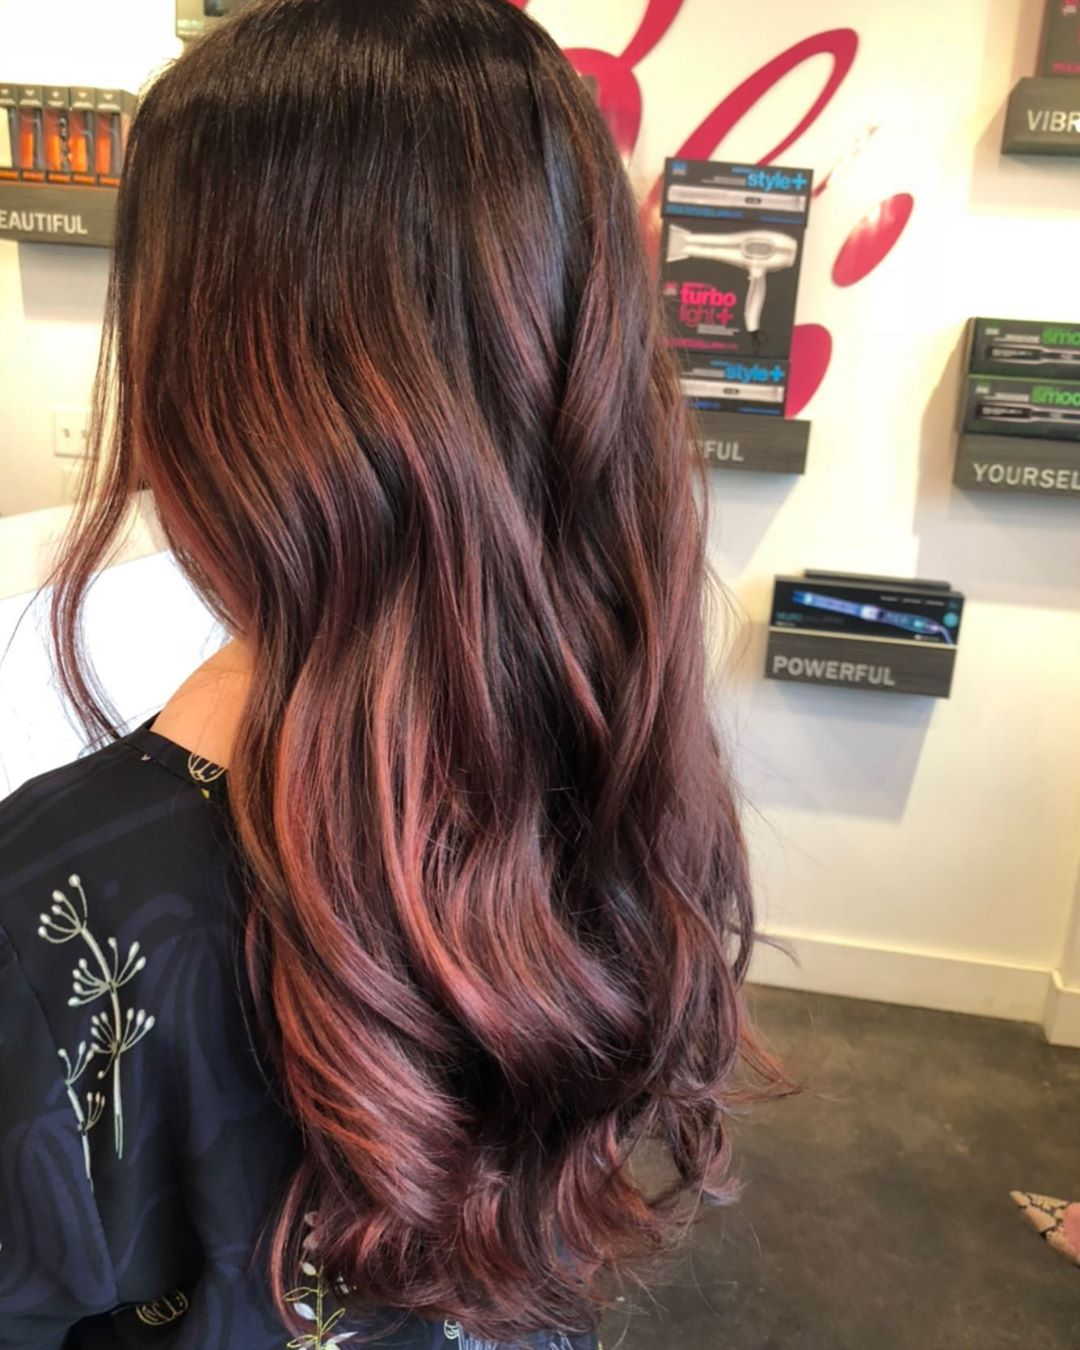 Stunning image of red balayage hairstyle